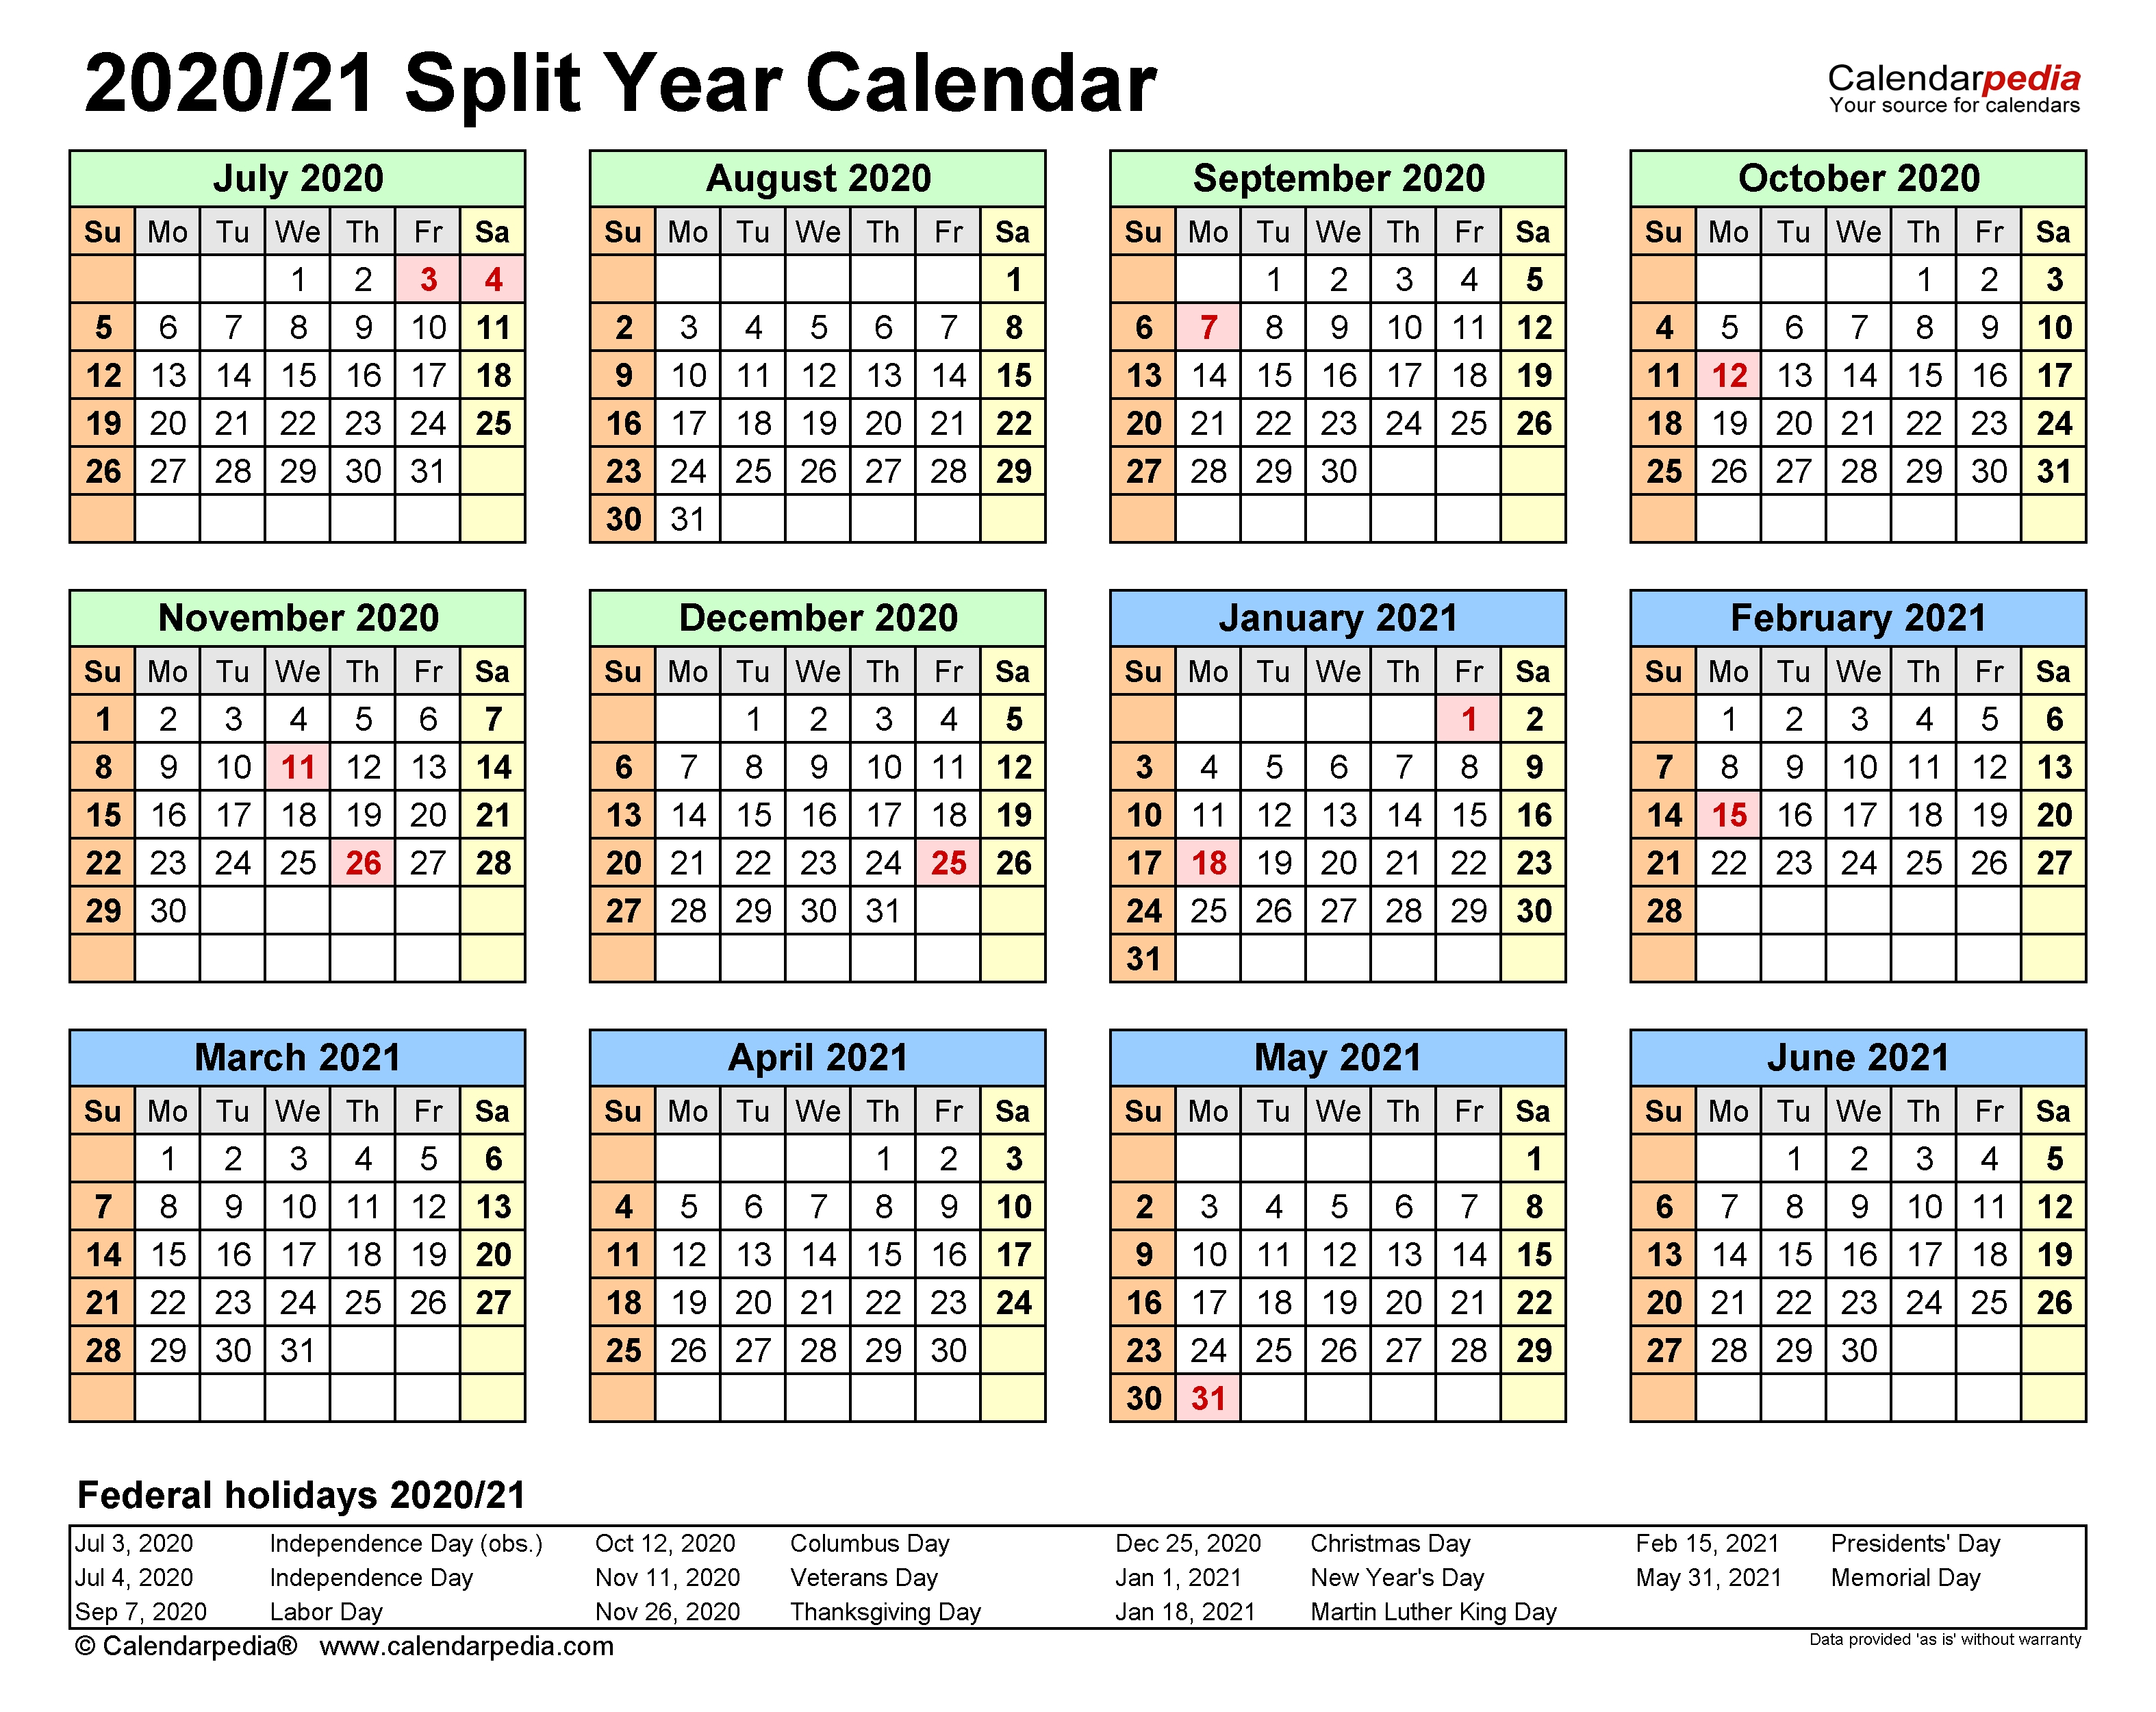 Free Printable Yearly Calendar 2021 2020 - Template ...